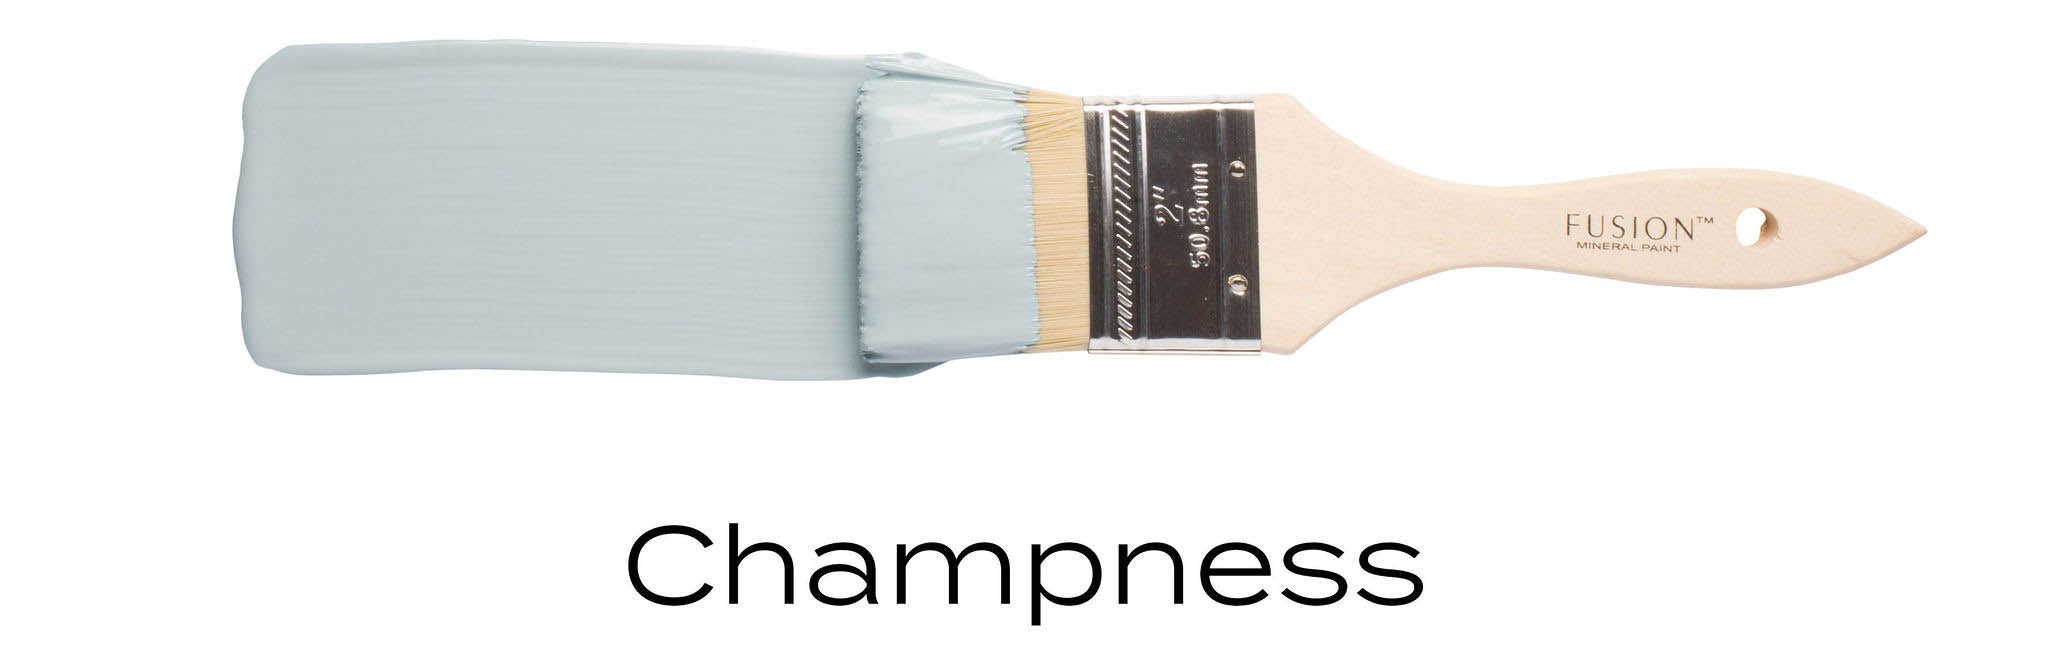 Champness fusion mineral paint example of light blue on paint brush